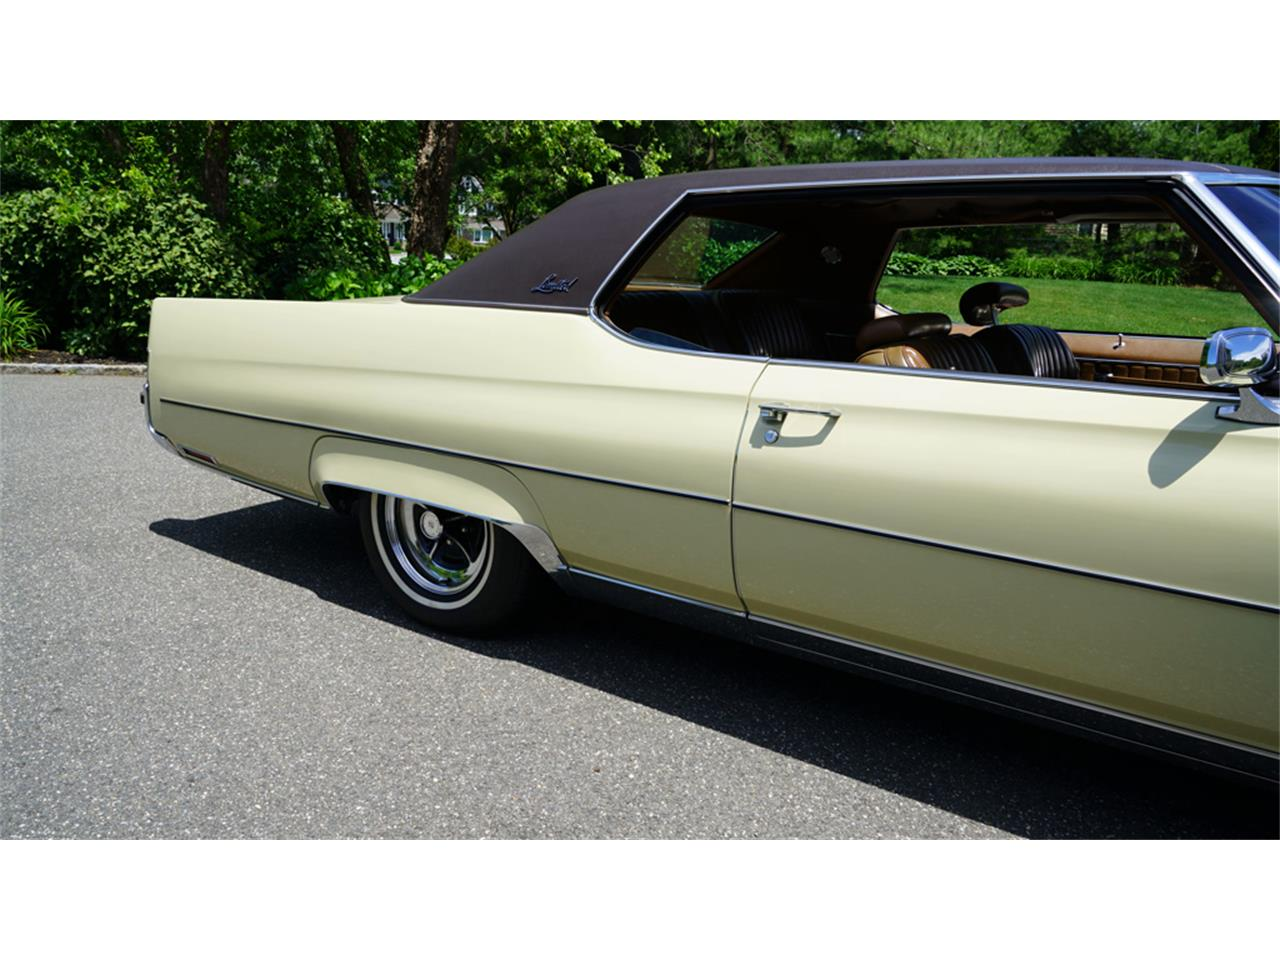 Large Picture of 1972 Buick Electra 225 located in Old Bethpage New York Offered by Fiore Motor Classics - QAJE